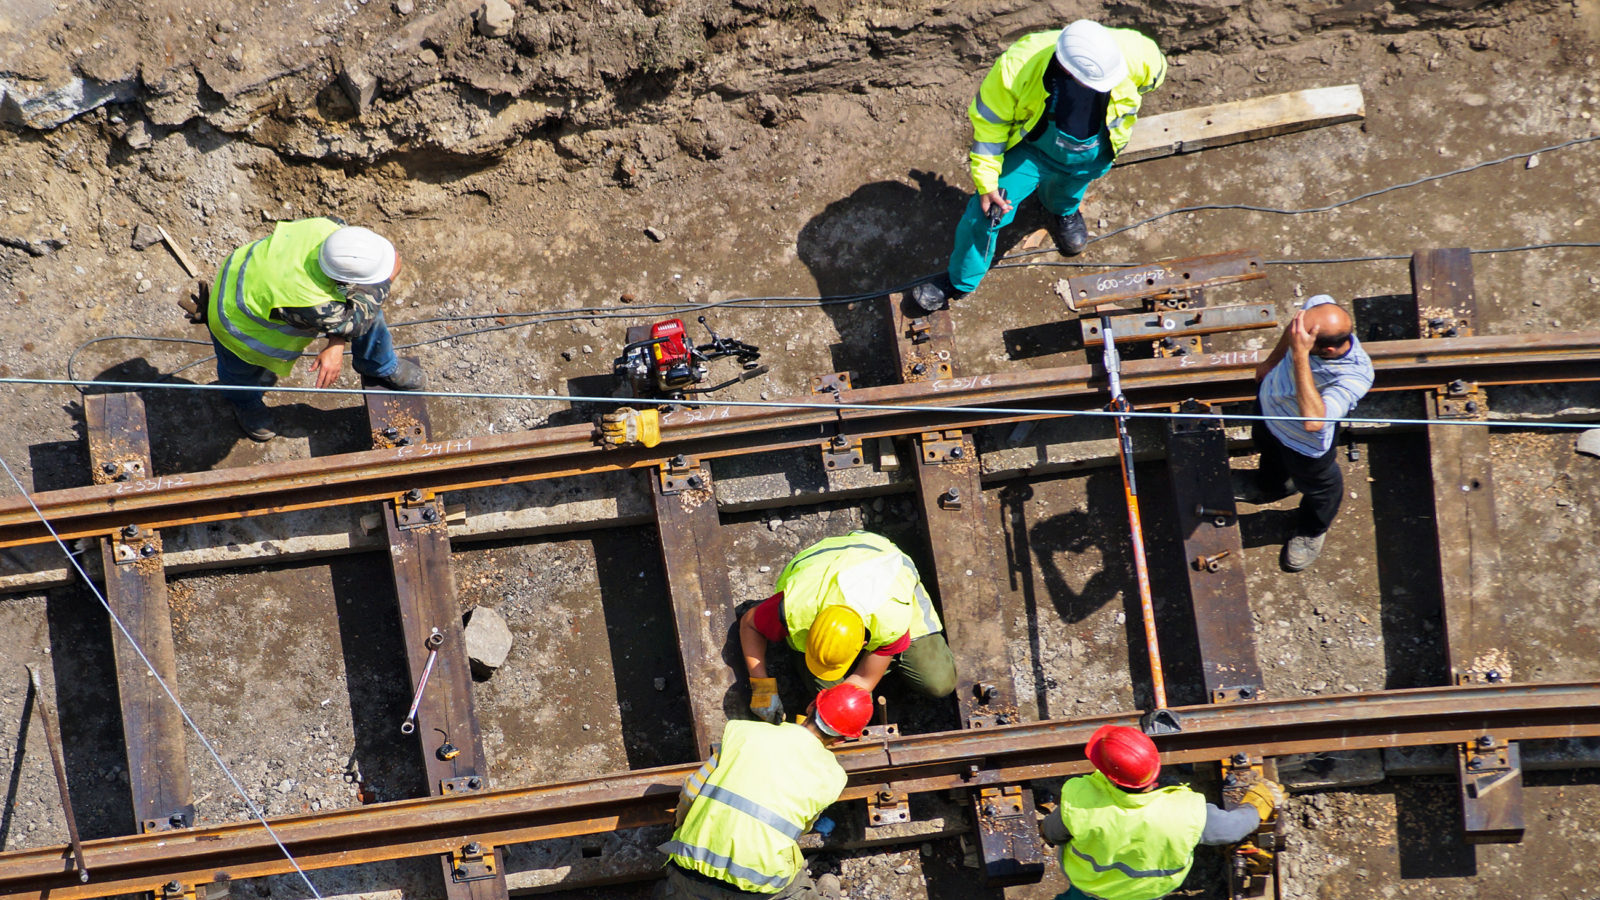 construction workers are building a new railway line